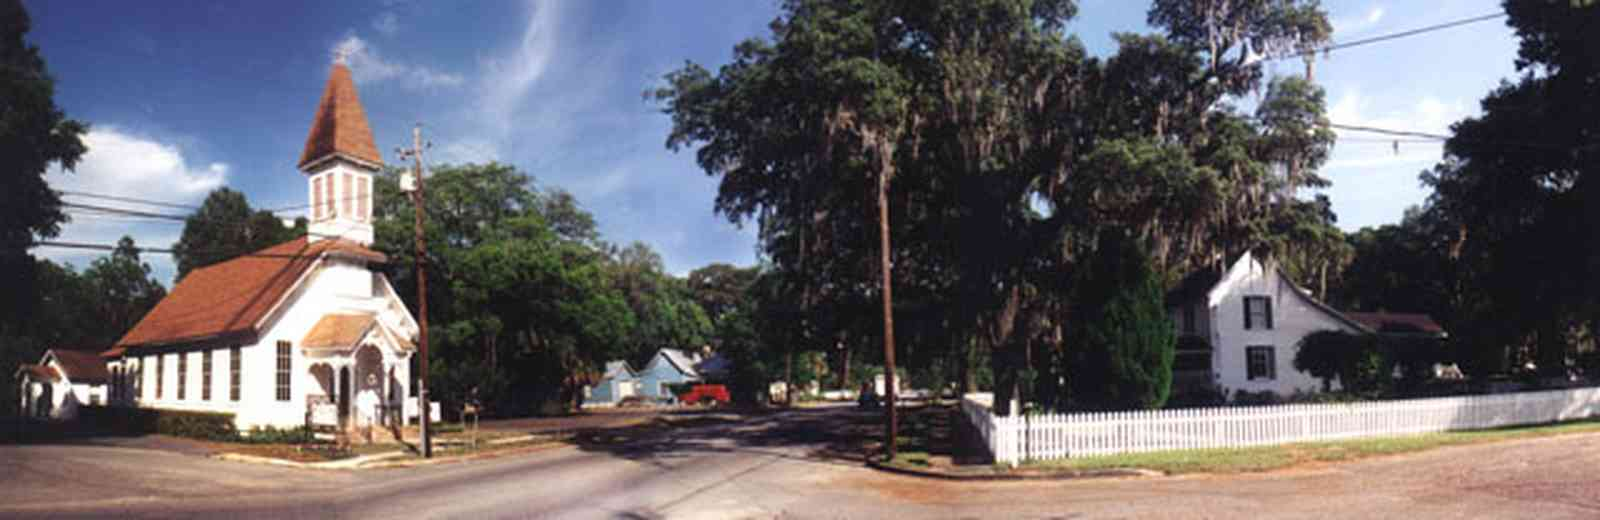 Bagdad:-Methodist-Church_00.jpg:  victorian church building, spanish moss, oak trees, small town, white picket fence ,